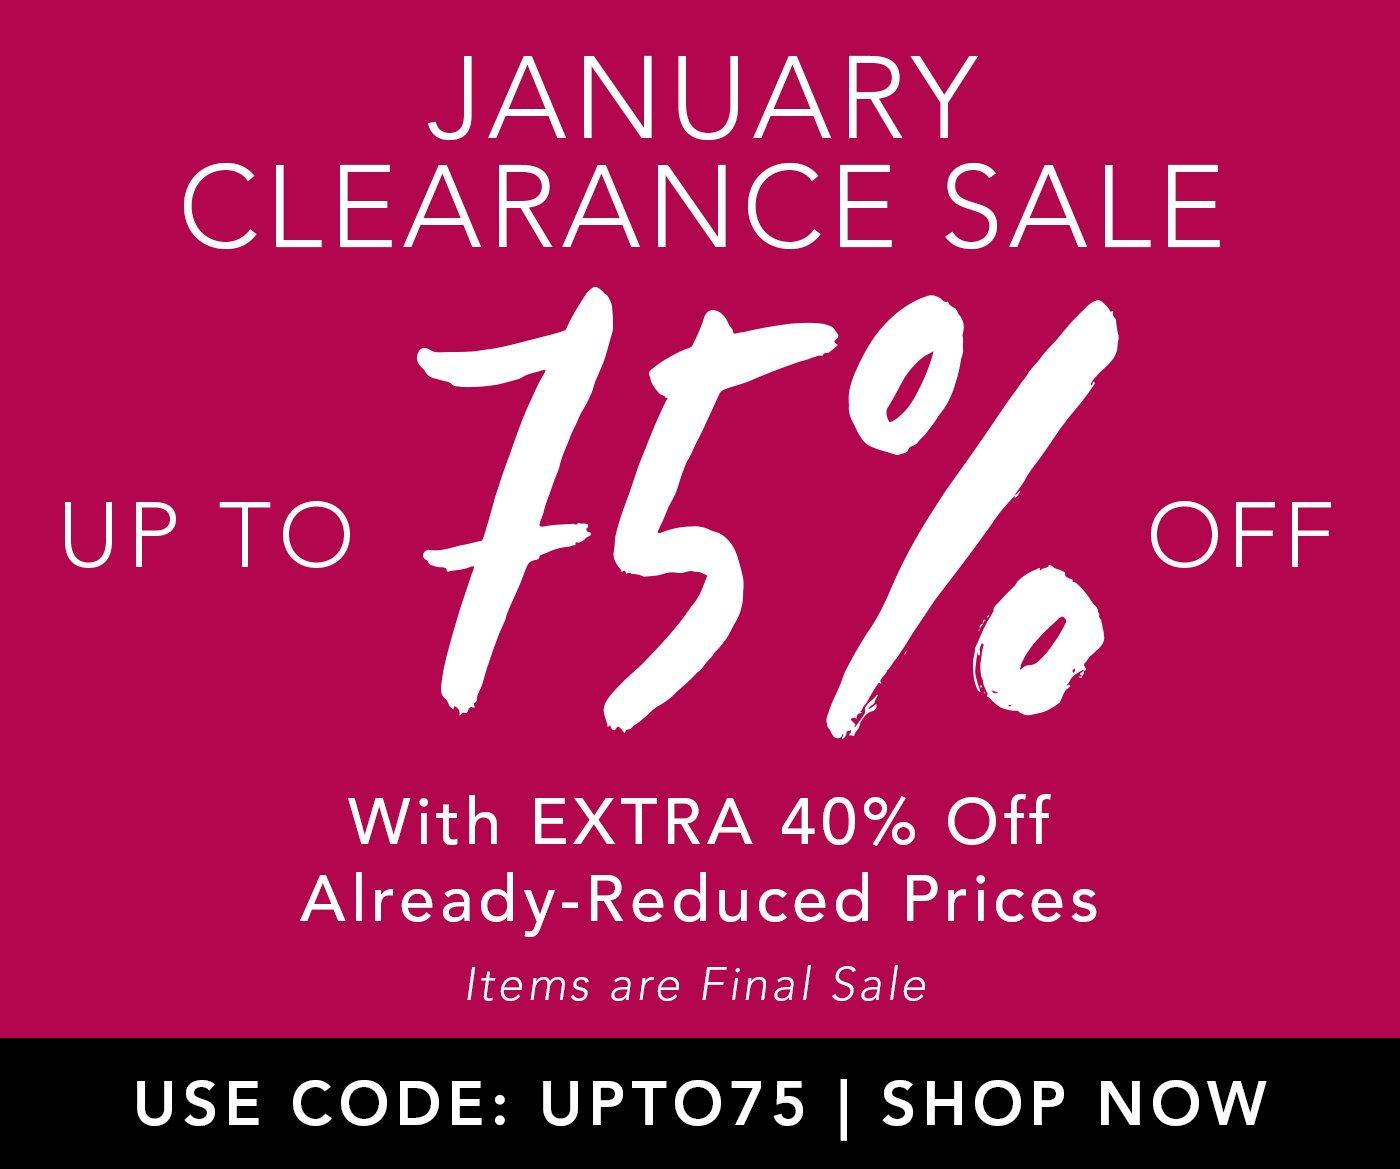 white text on pink background: January clearance sale. up to 75% off. use code: UPTO75. shop now.